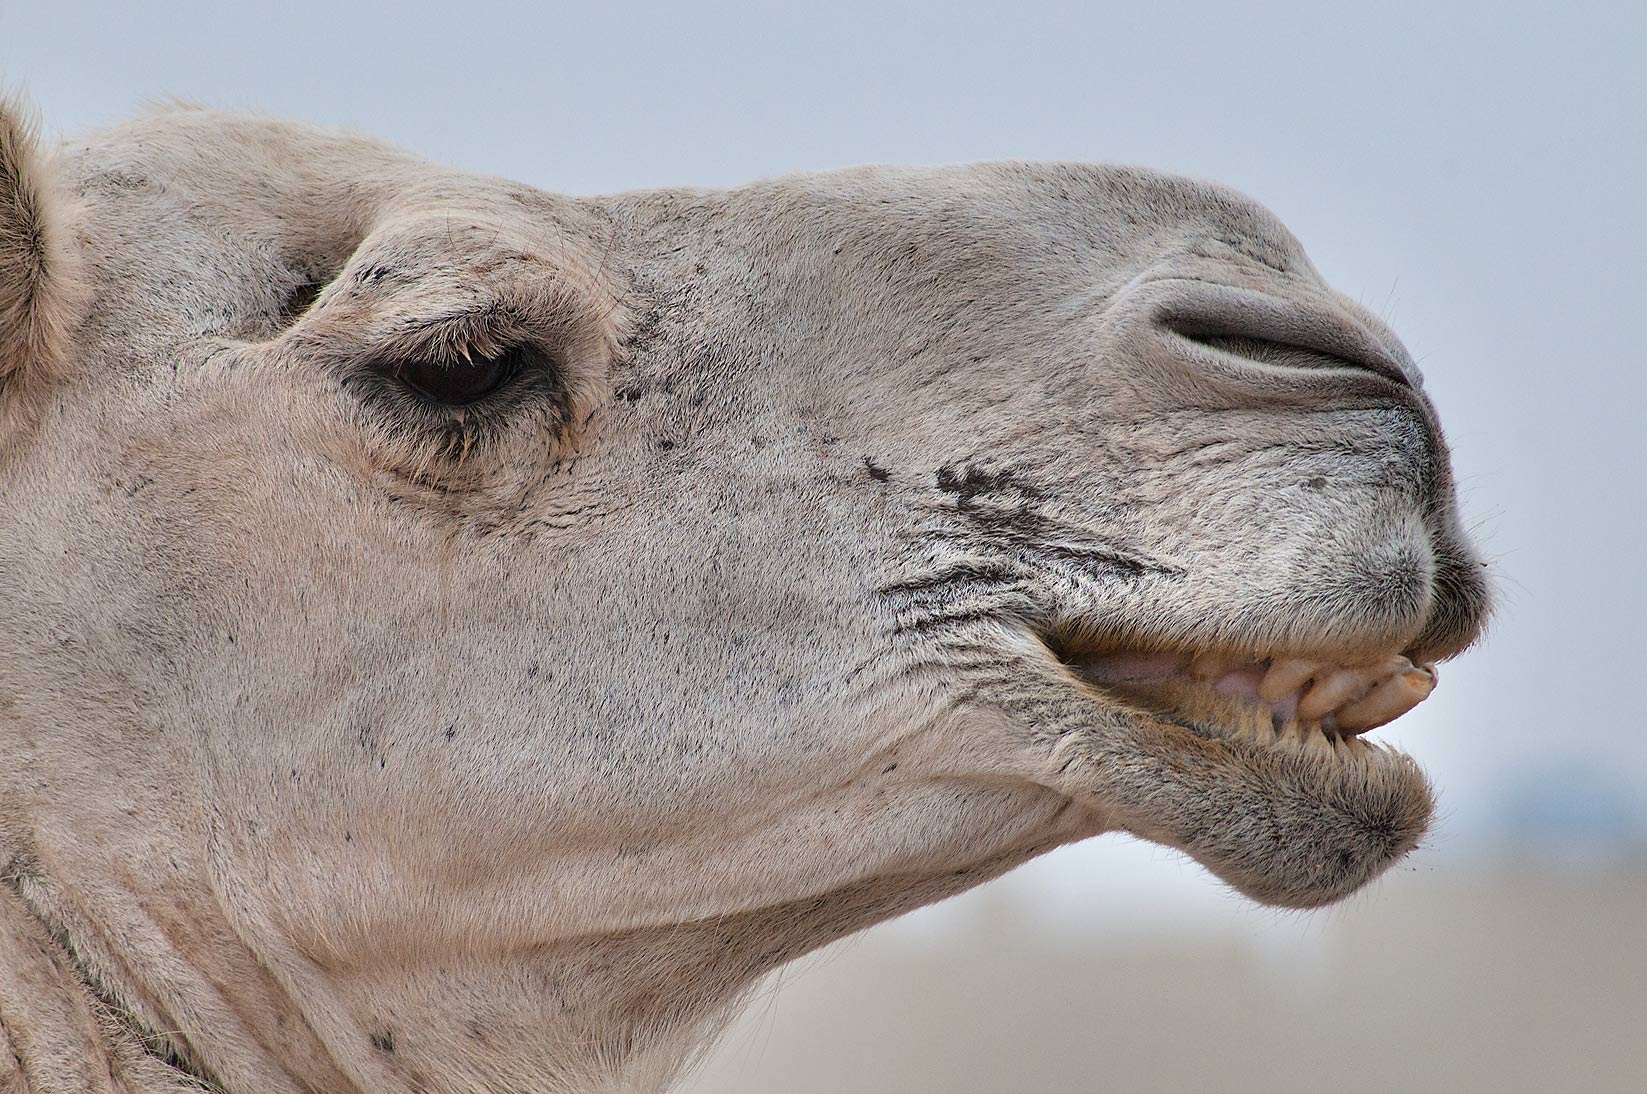 Camel's grin in Camel Market, Wholesale Markets area. Doha, Qatar